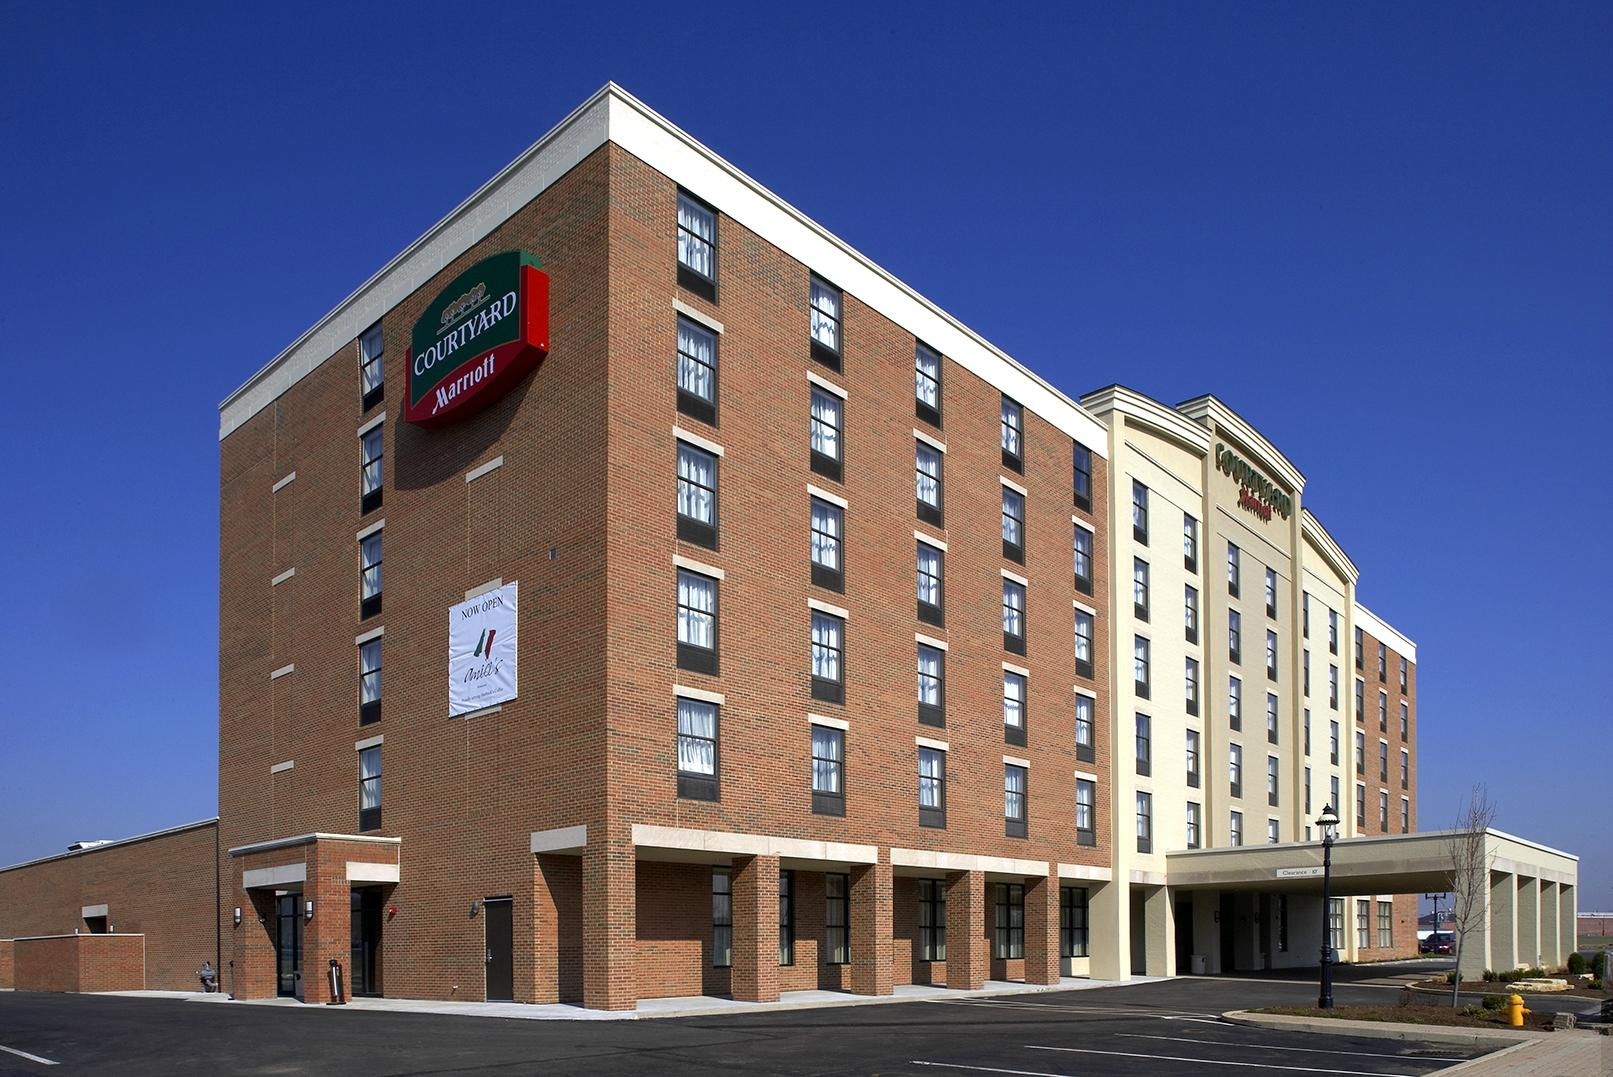 Courtyard by Marriott Hamilton